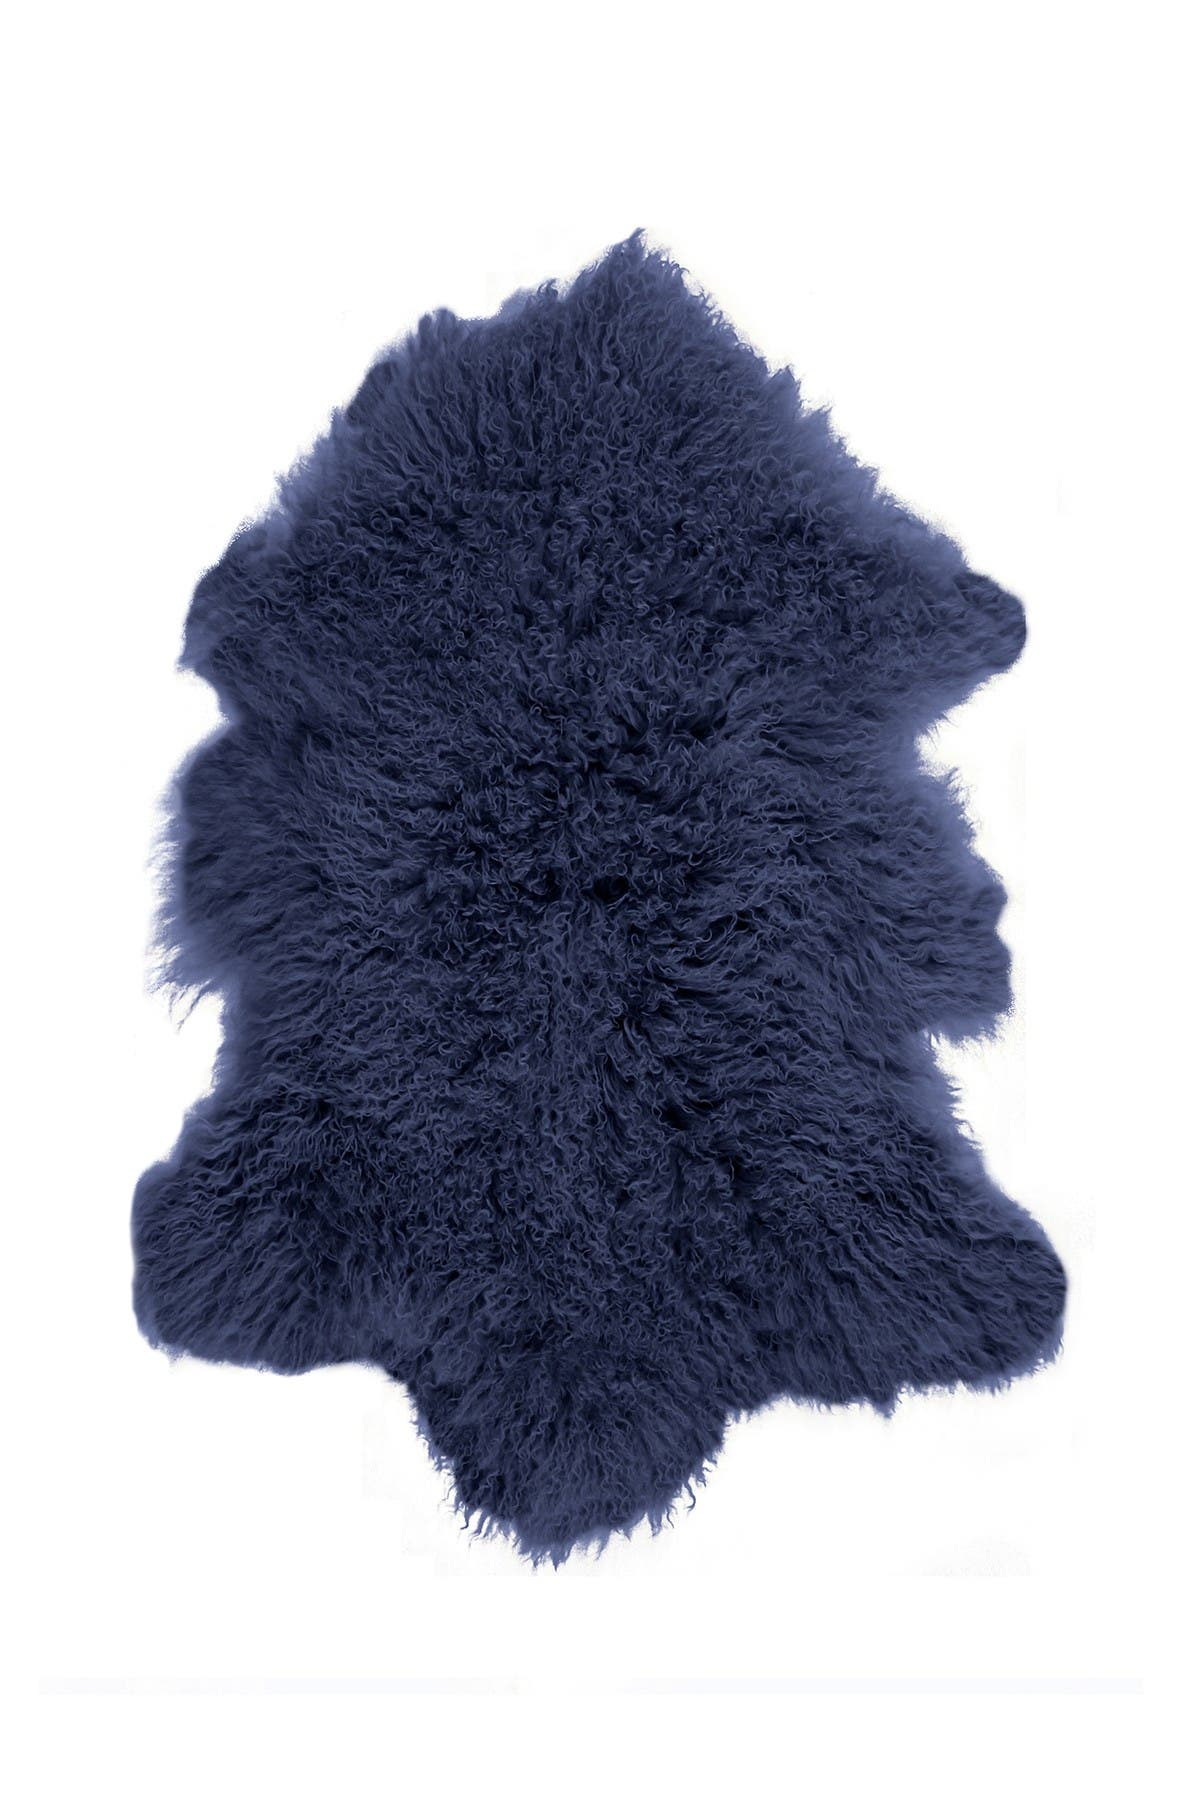 Image of Kinetic Luxe Faux Fur Faux Fur Single Rug - 2ft x 3ft - Ink